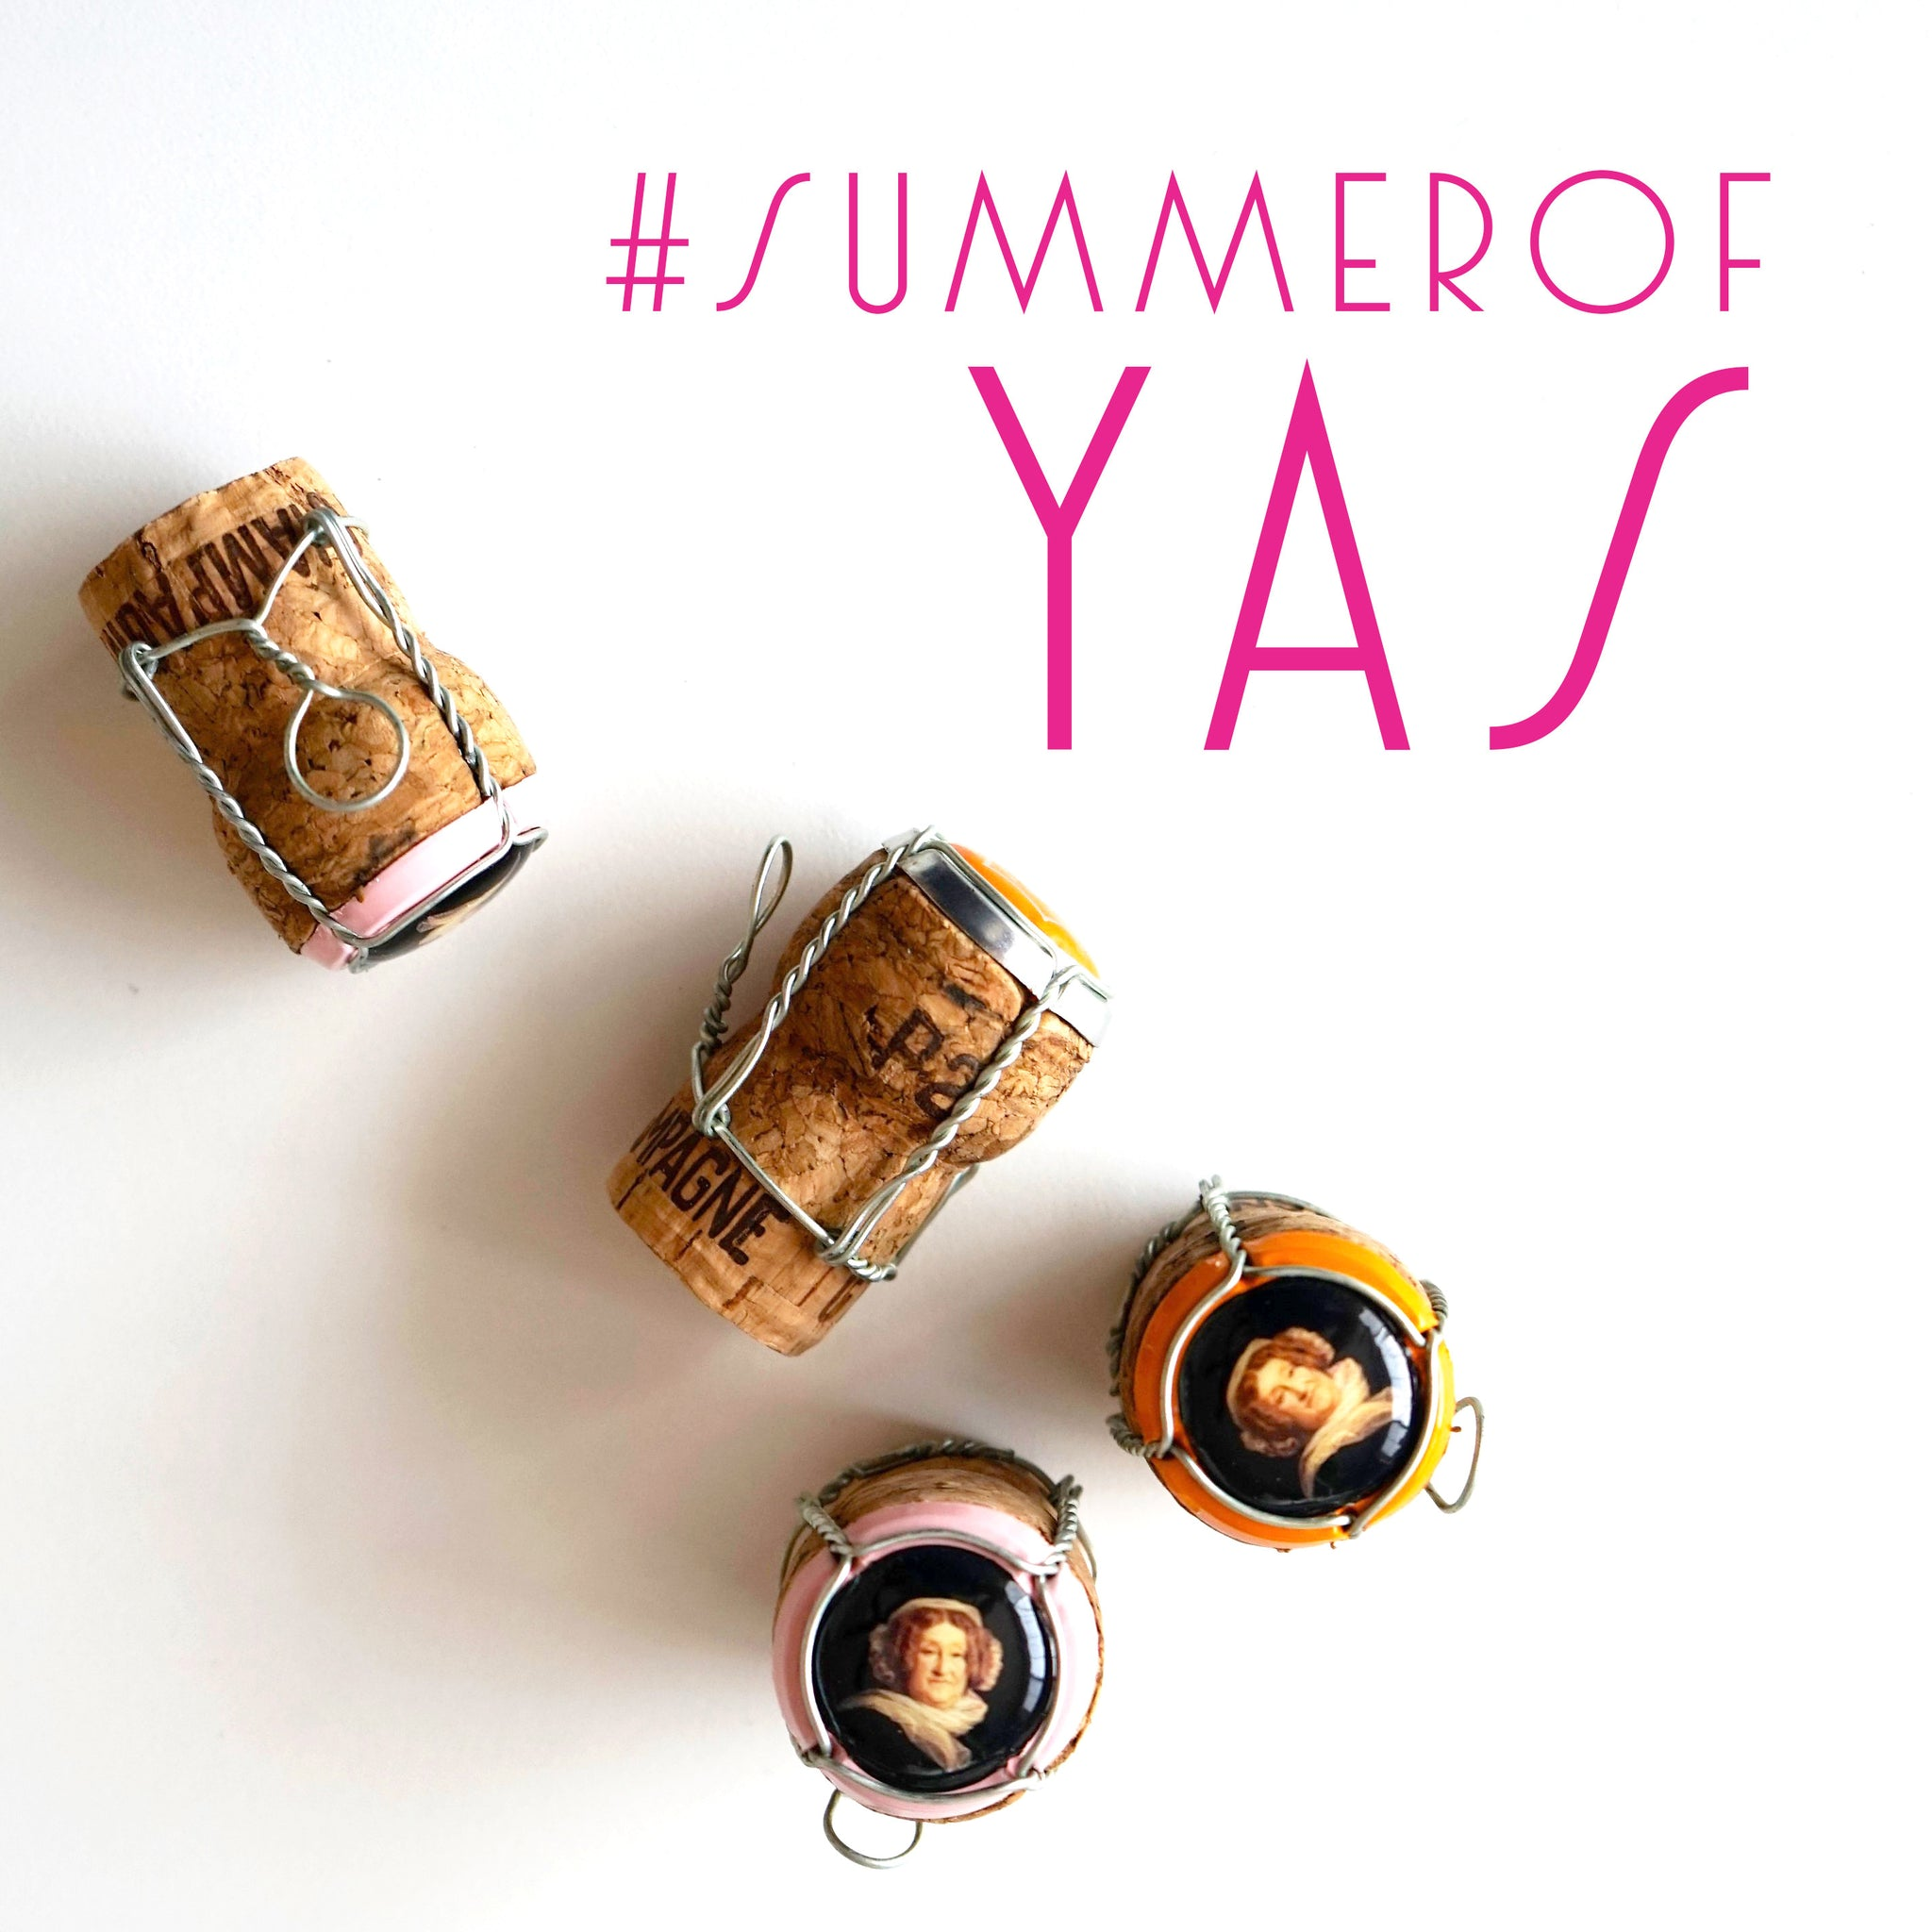 Summer of YAS Checklist Fun Vibes Summertime